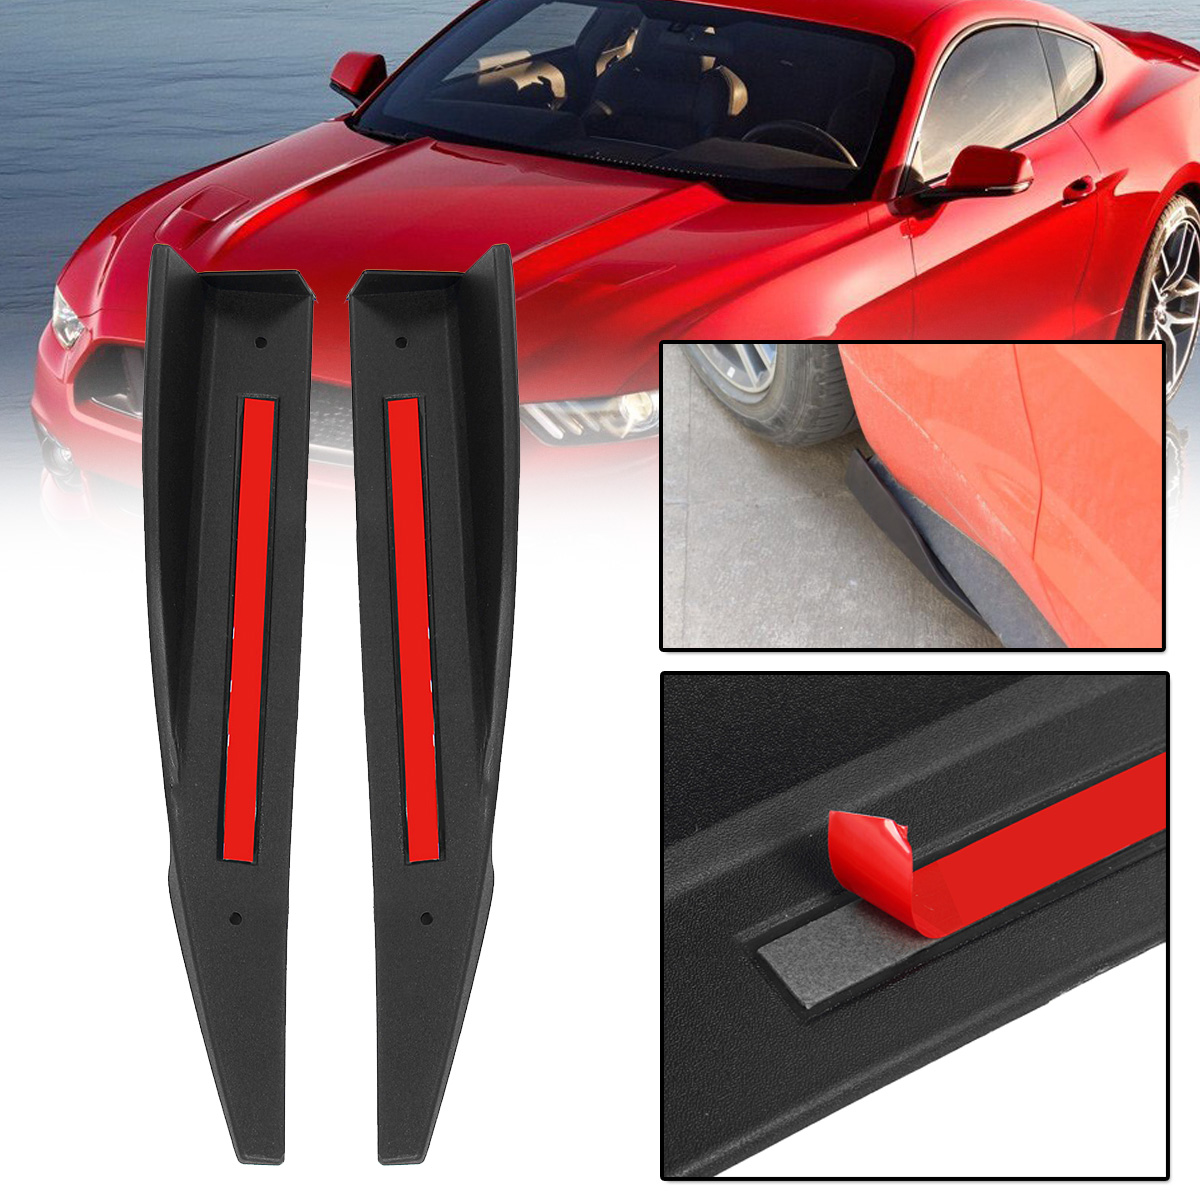 1Pair Universal Car Body Side Skirts For 2015-2017 For Ford For Mustang Stickers Rocker Splitters Diffuser Winglet Bumper 36cm1Pair Universal Car Body Side Skirts For 2015-2017 For Ford For Mustang Stickers Rocker Splitters Diffuser Winglet Bumper 36cm